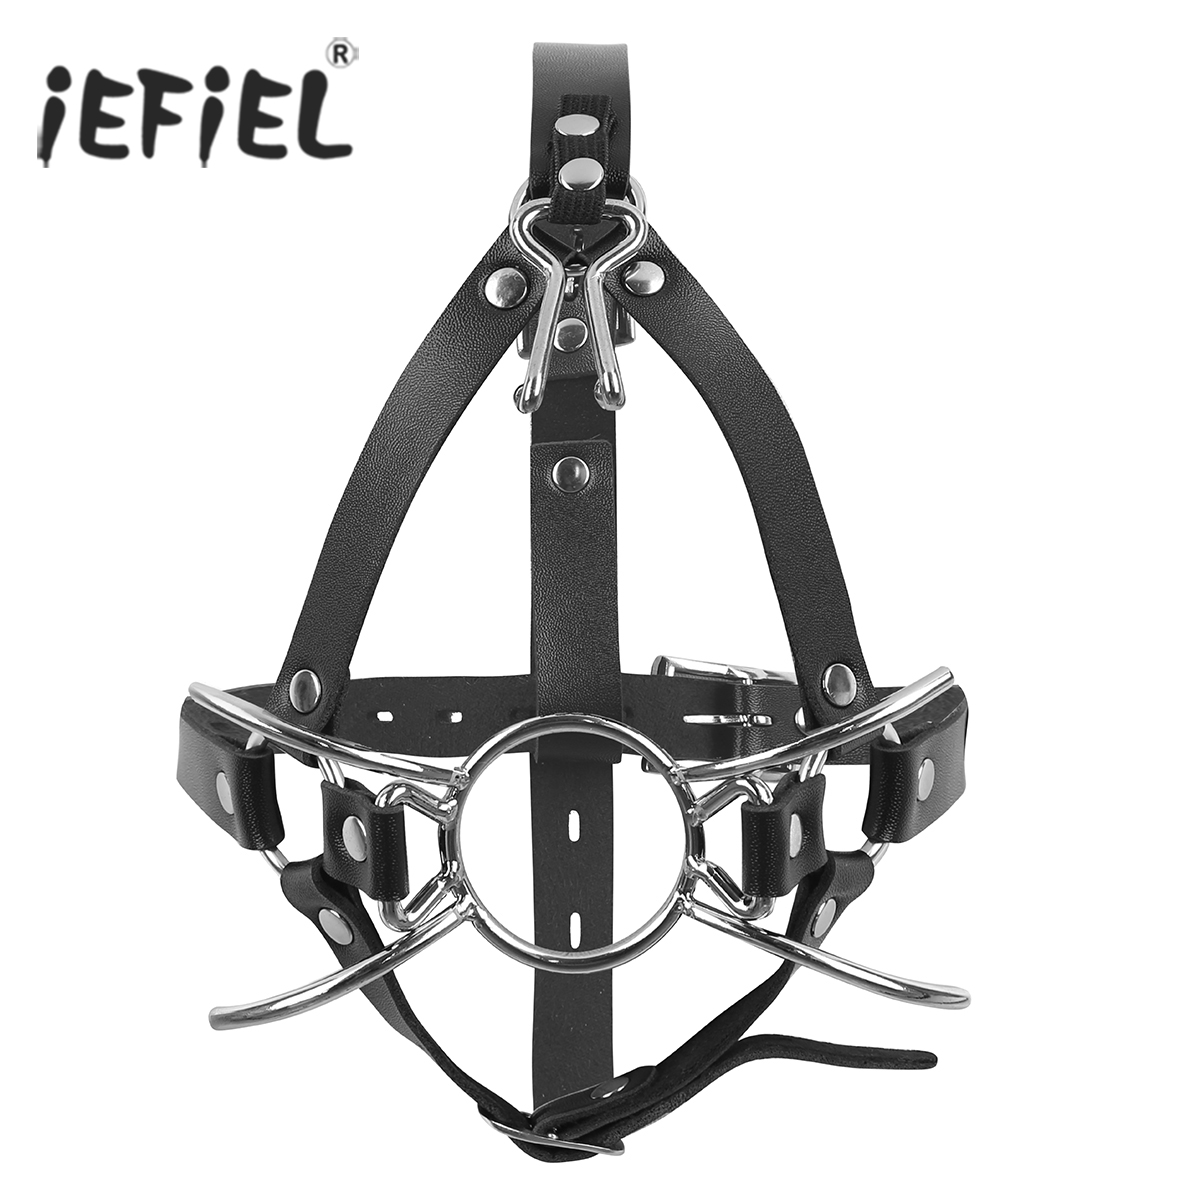 Black Adjustable Leather Bite-Resistant Fixed Open Mouth O-Ring Fixed Masks Sexy Costumes Accessories for Adult Womens